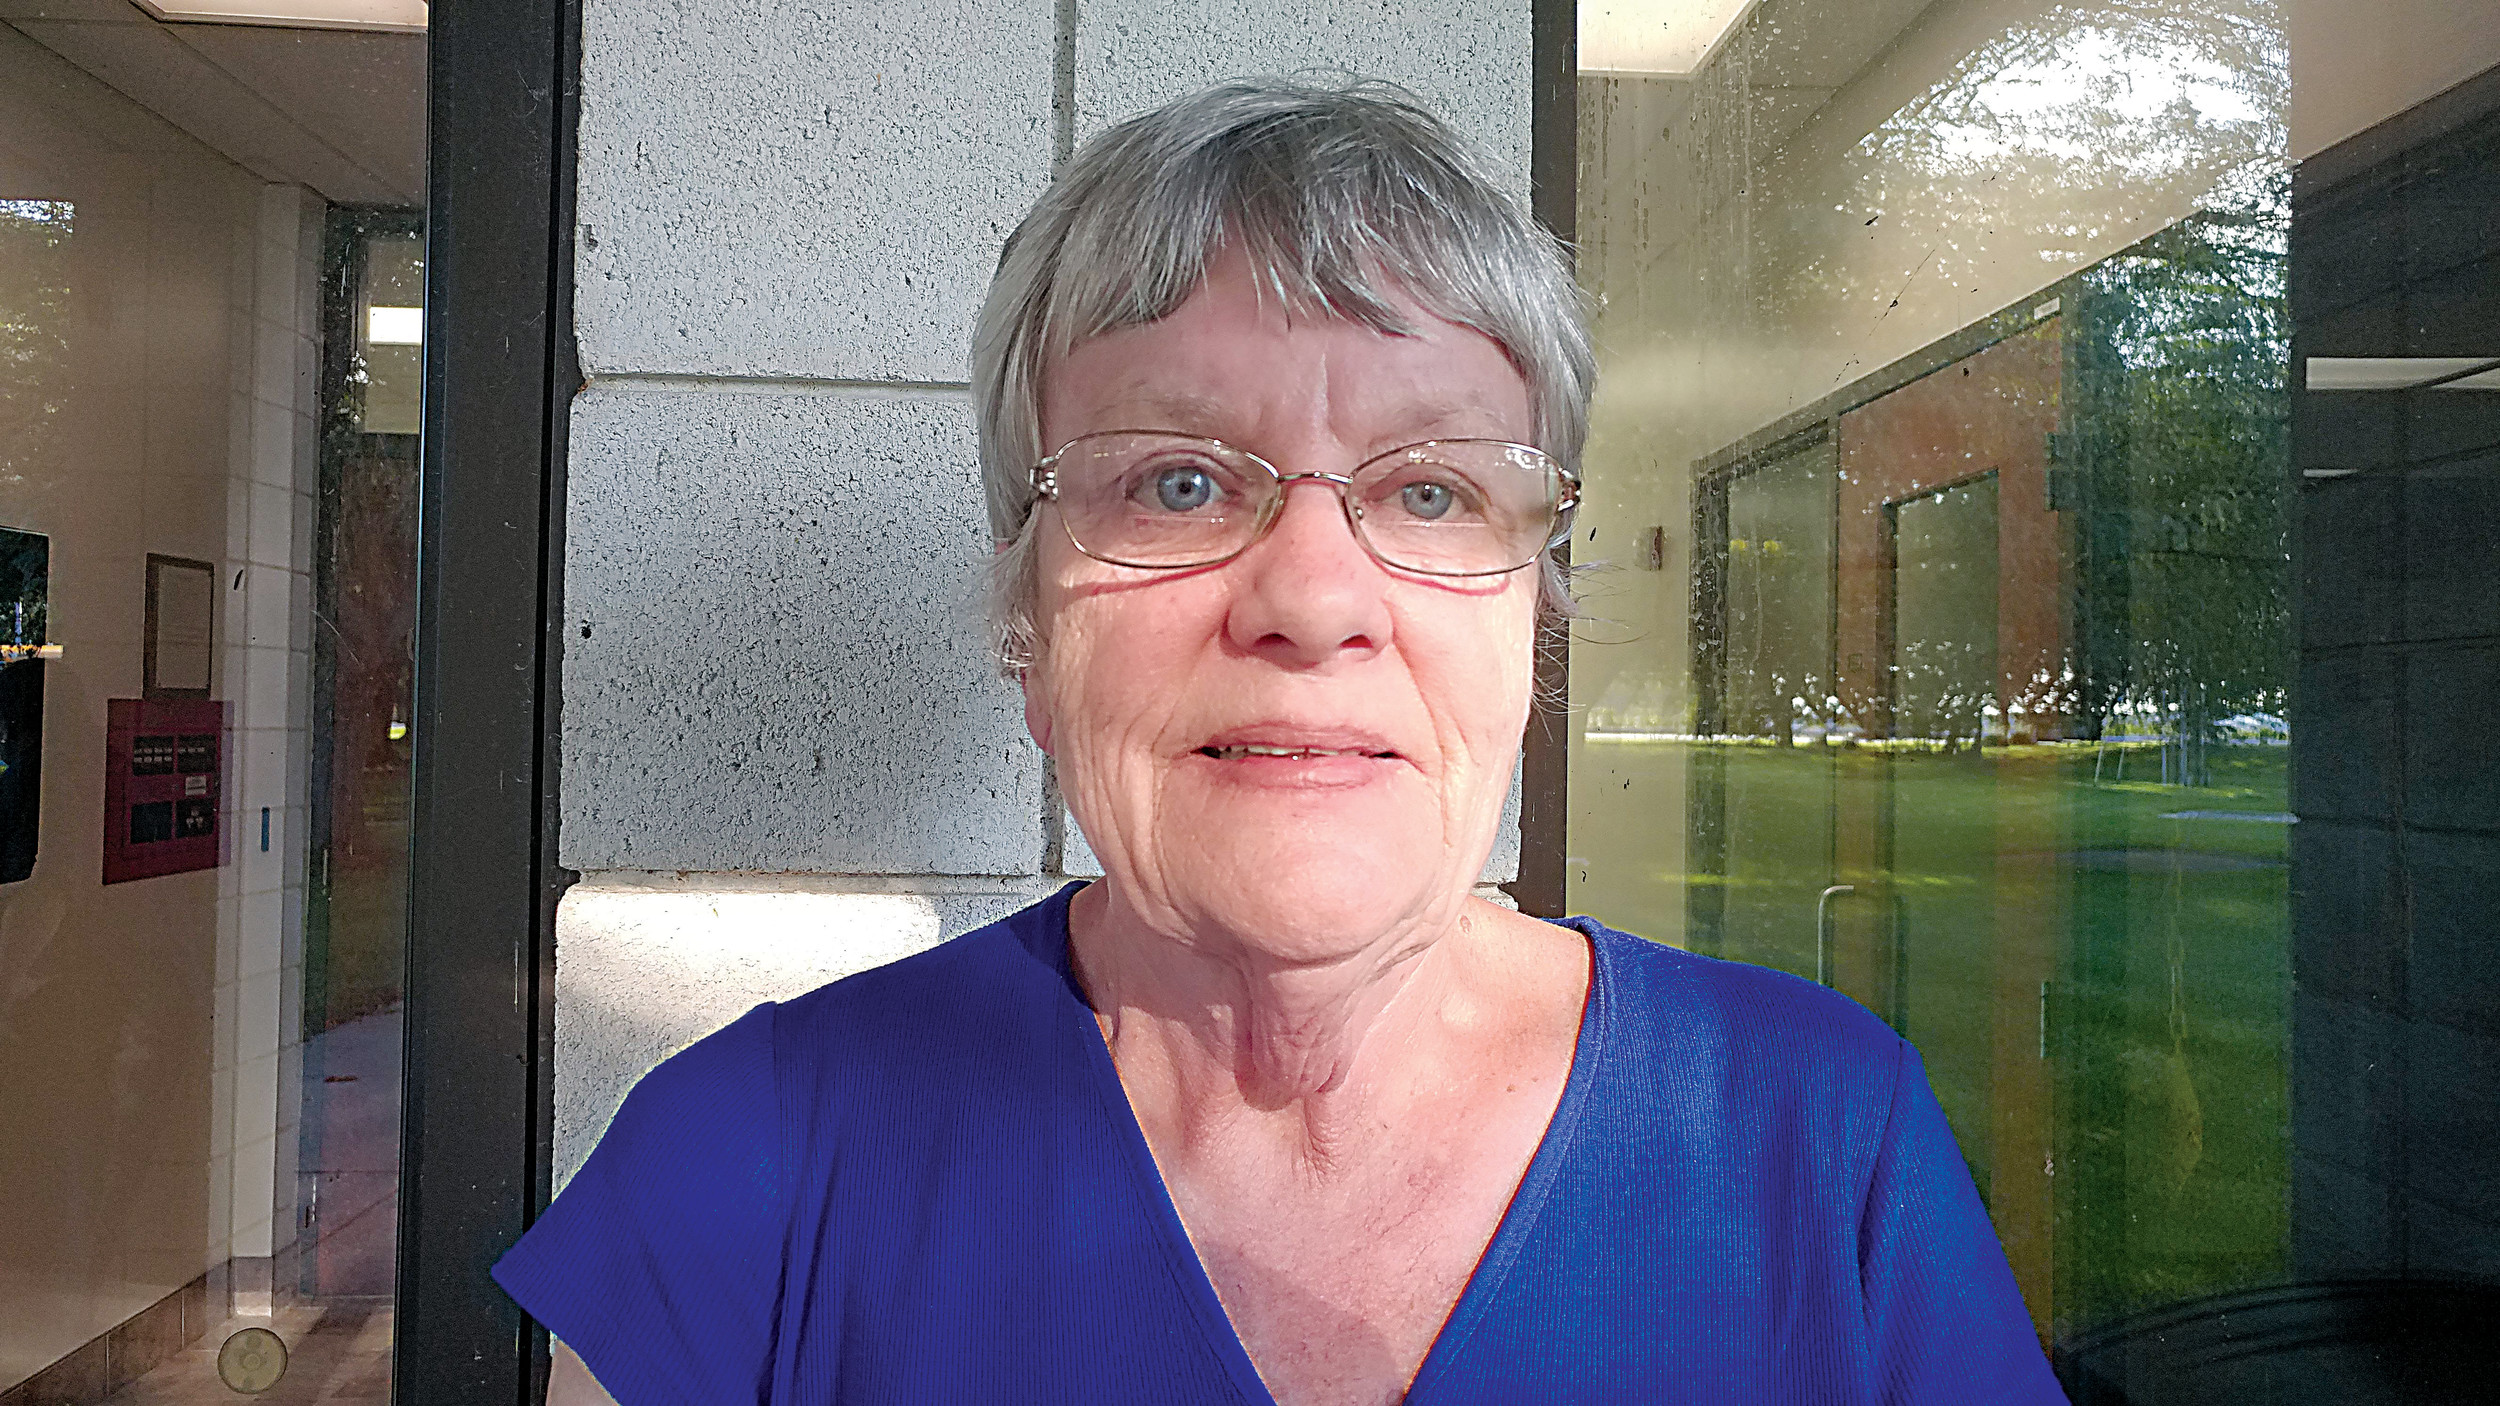 Mary Leisey was one of the people at the TMI open house event on Thursday, Sept. 7 and is sad to see the event possibly go away with TMI expected to shut down in Sept. 2019.